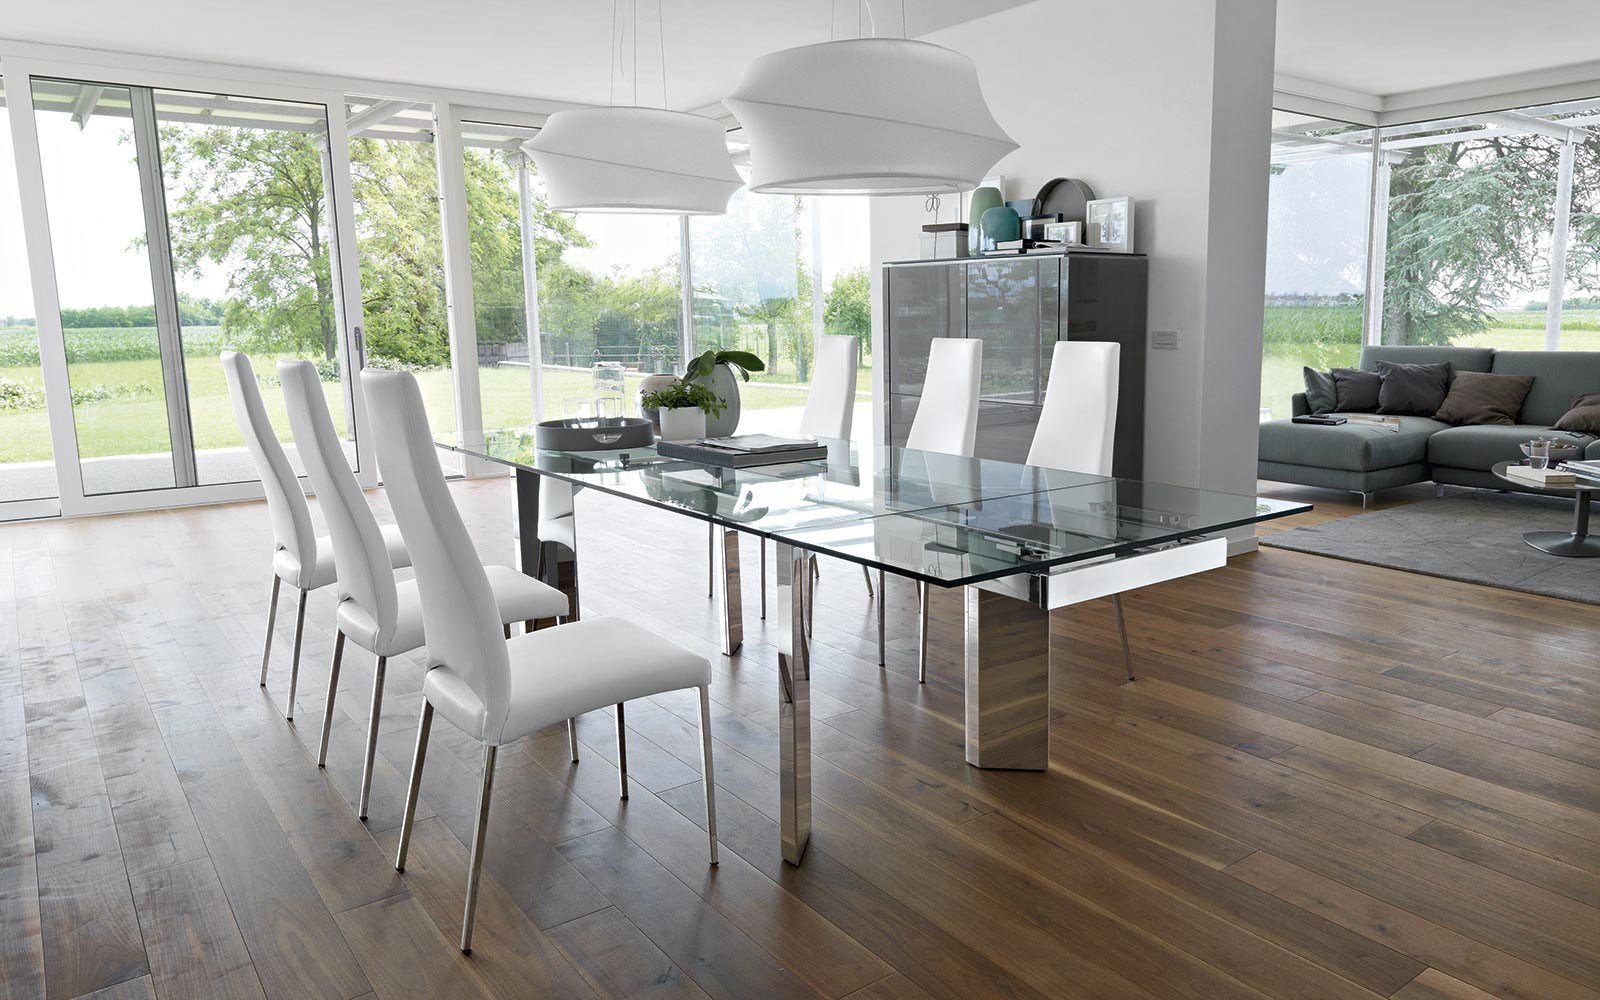 Tower tavolo in vetro by calligaris for Tavolo cristallo allungabile calligaris